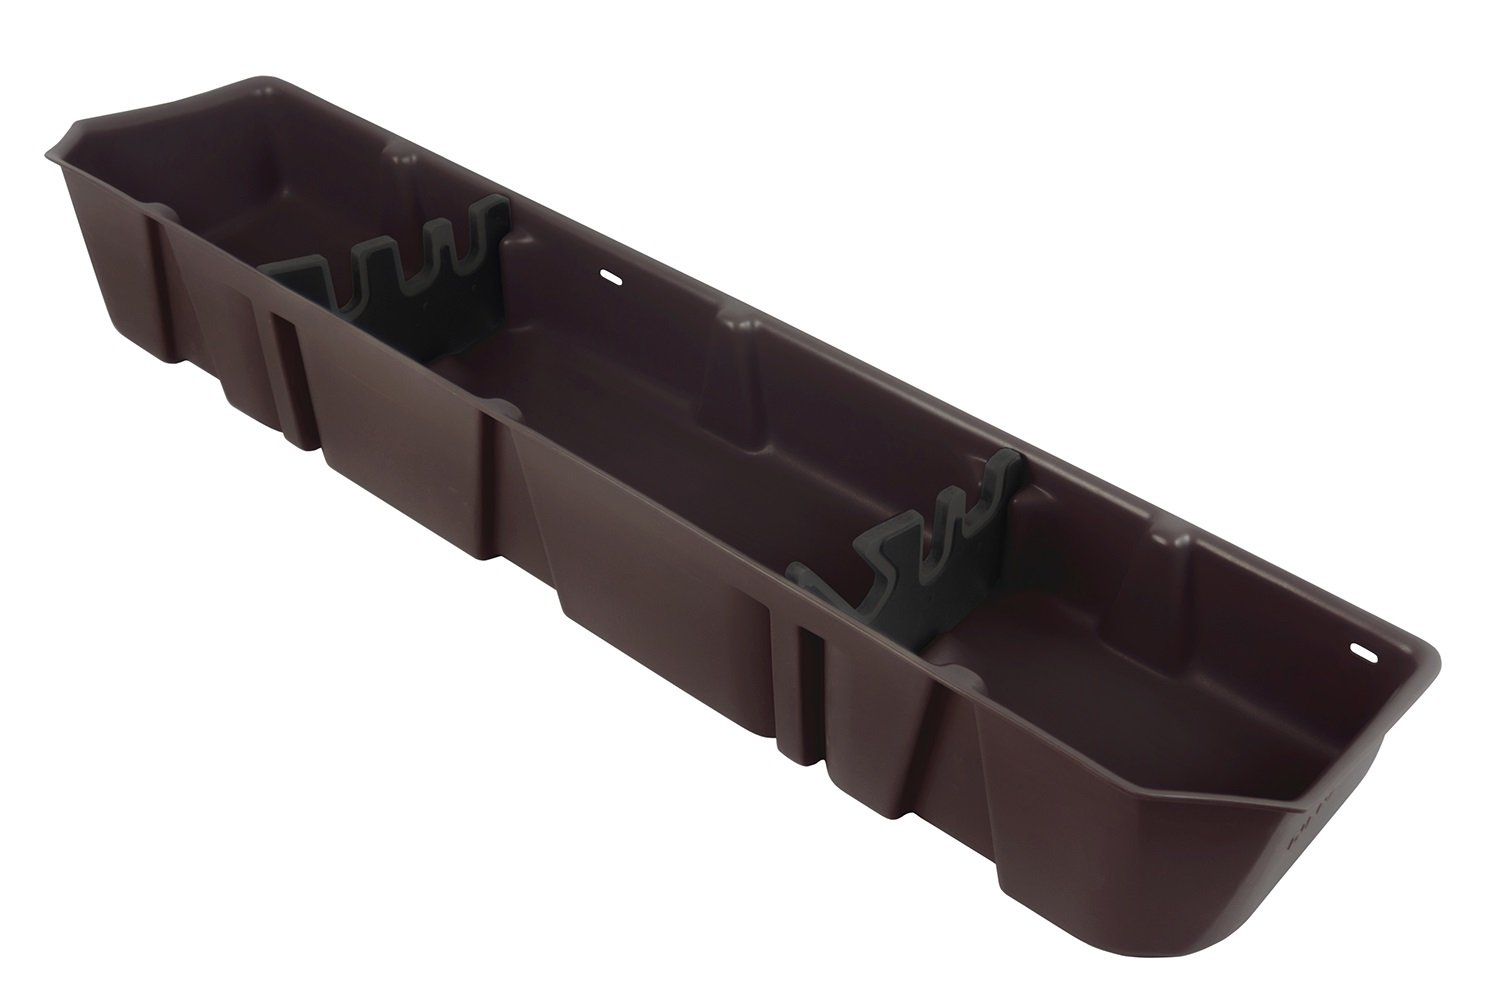 DU-HA Under Seat Storage Fits 15-17 Ford F-150 SuperCrew, Java/Brown, Part #20113